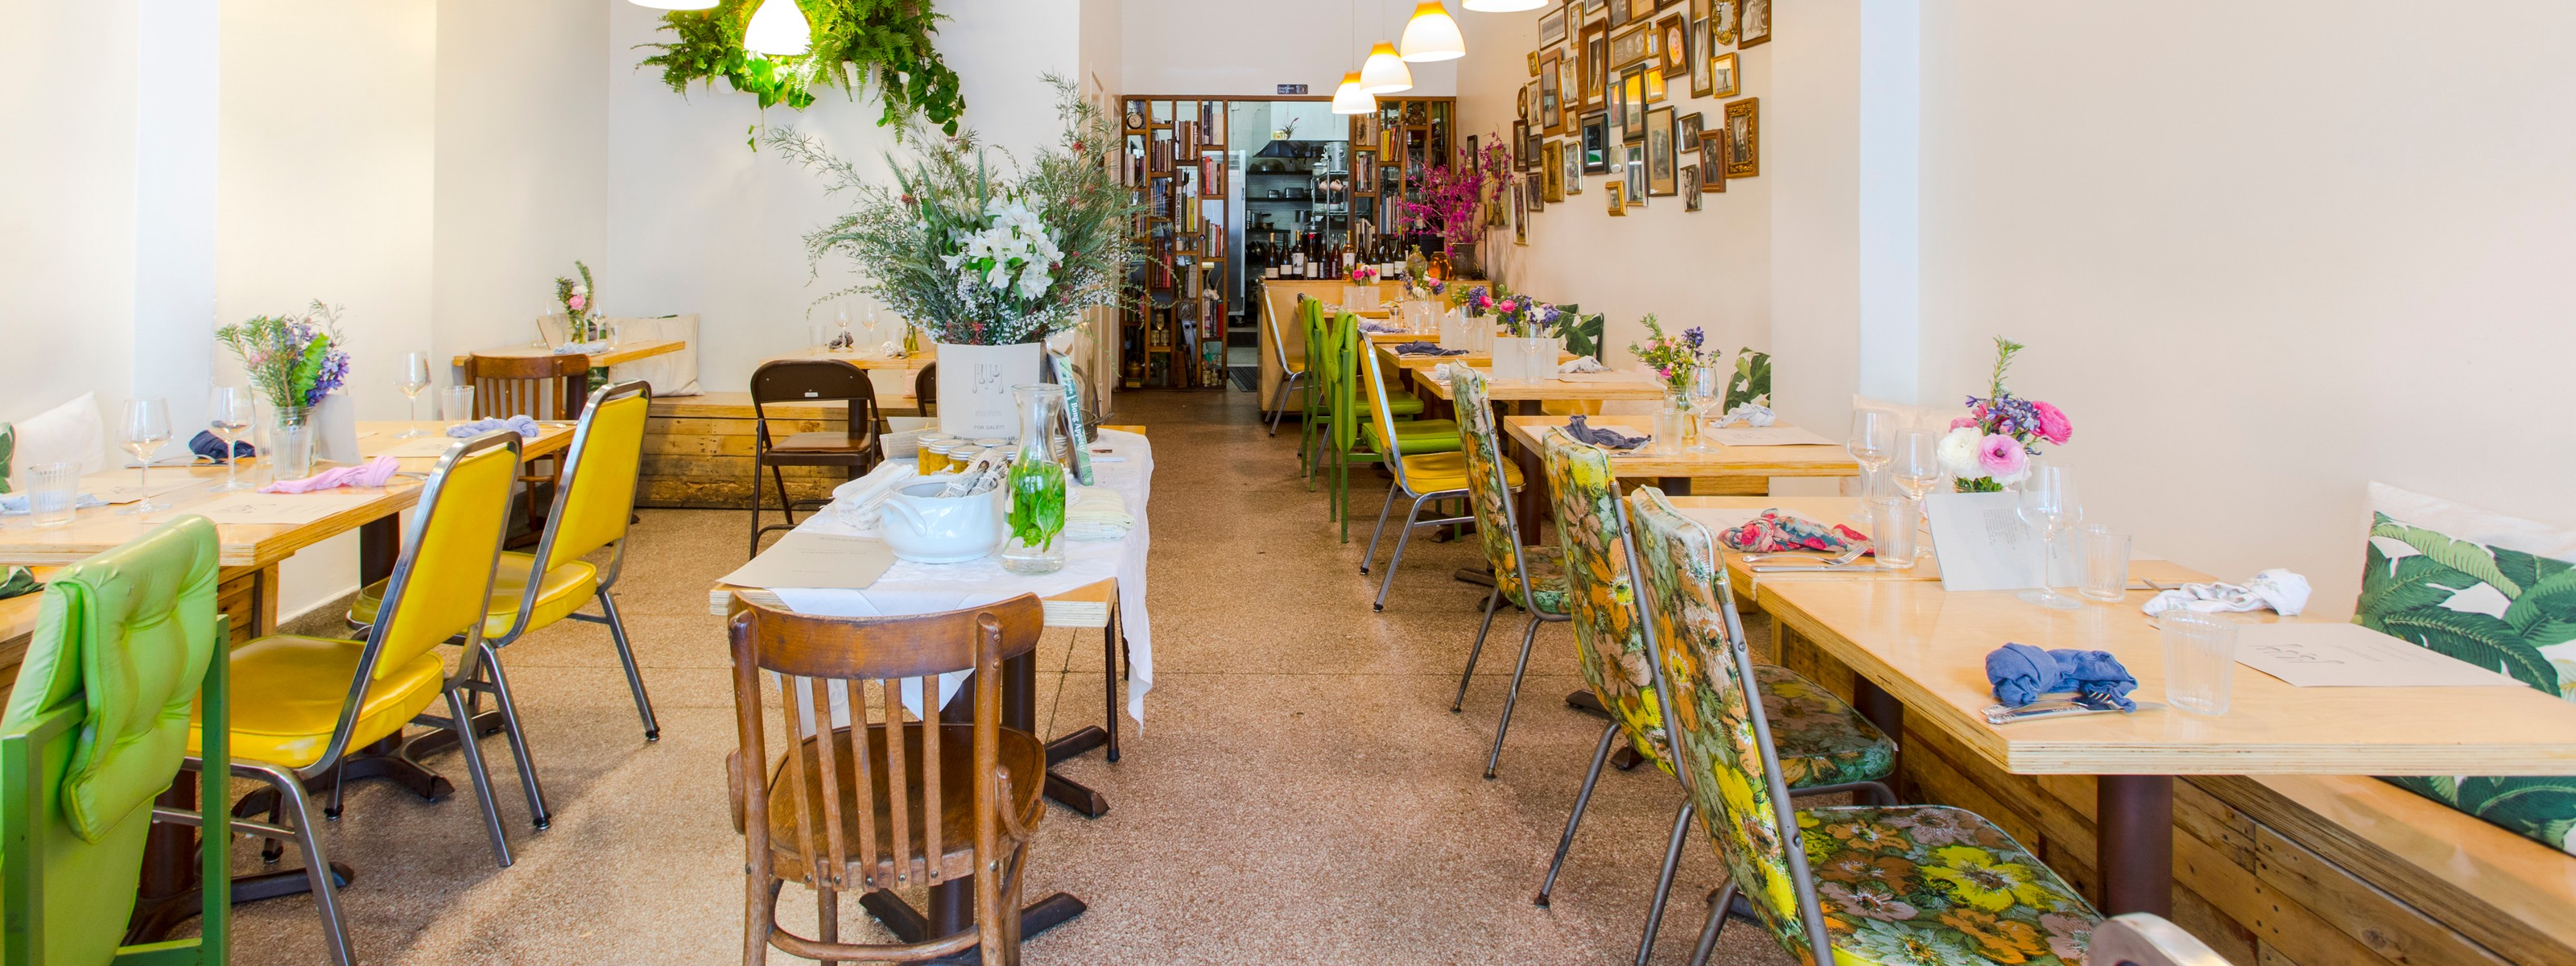 "A Guide To LA's ""Super Cute Reasonably Priced Restaurants To"